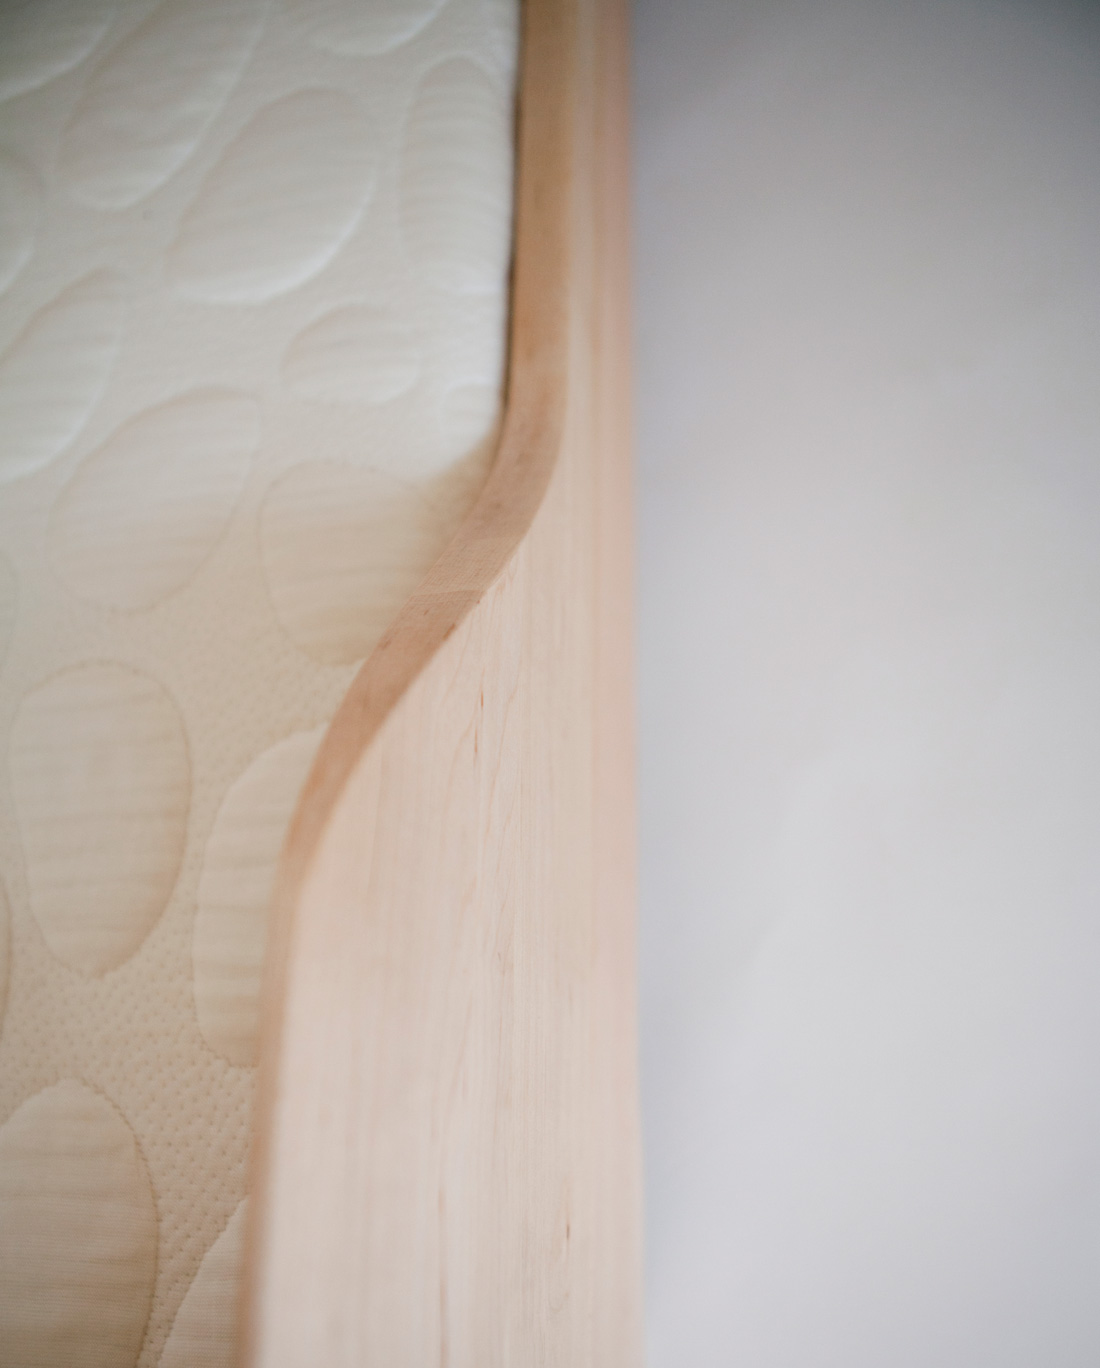 Detail of Echo Toddler Bed